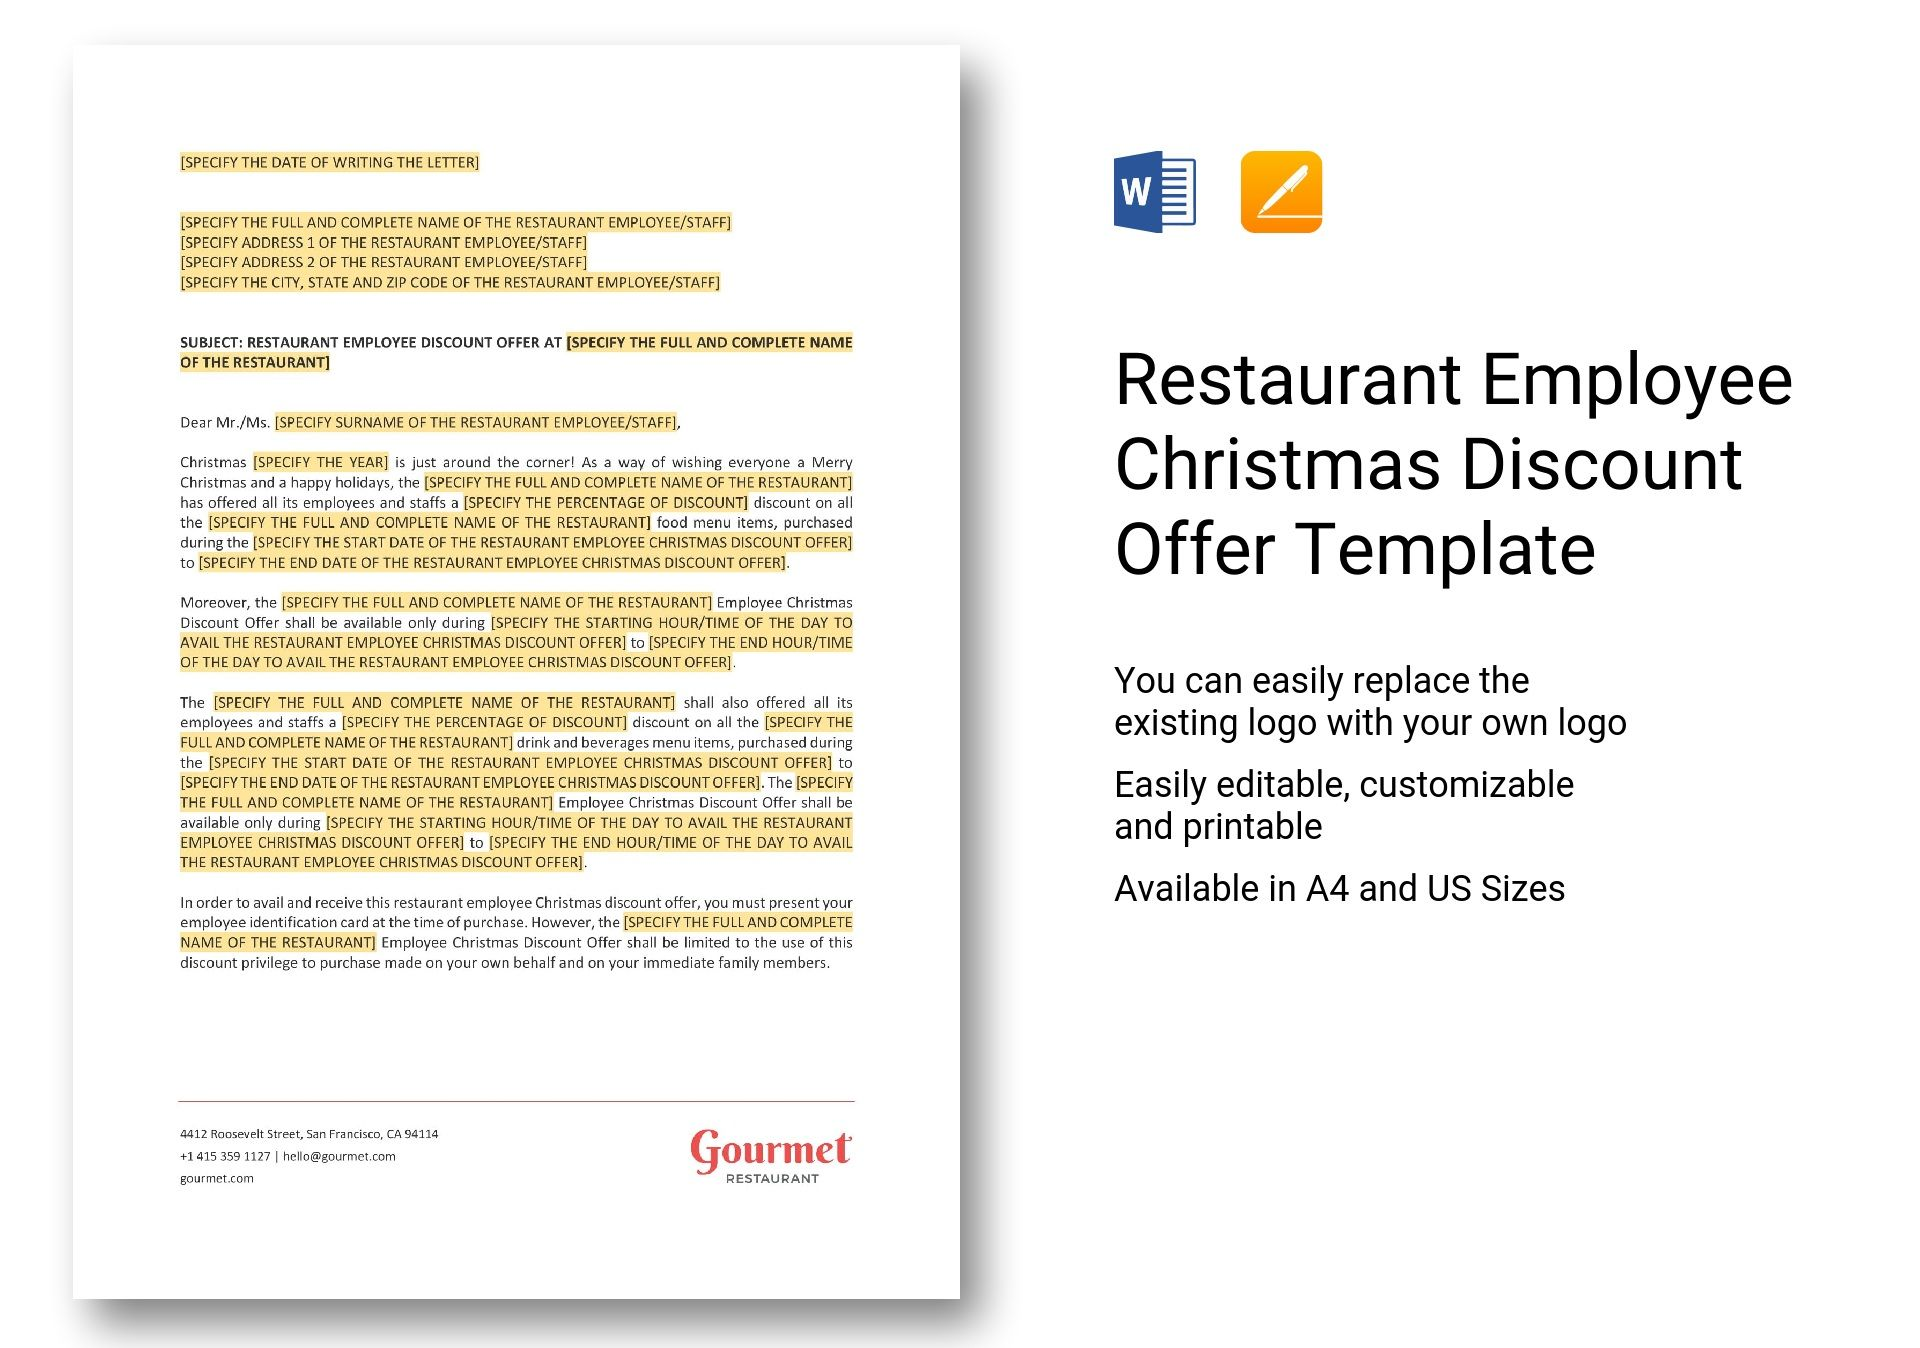 Restaurant Employee Christmas Discount Offer Template in Word, Apple ...